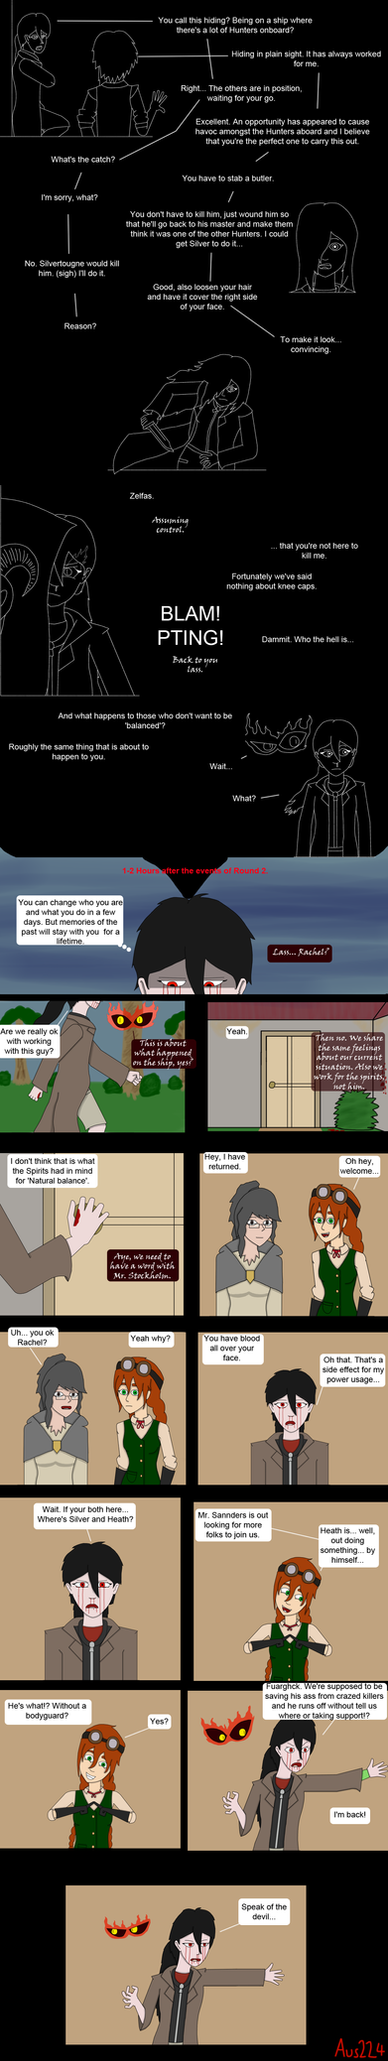 TSI OCT SE 'Lies and Mistrust' pg 1 by Aus224